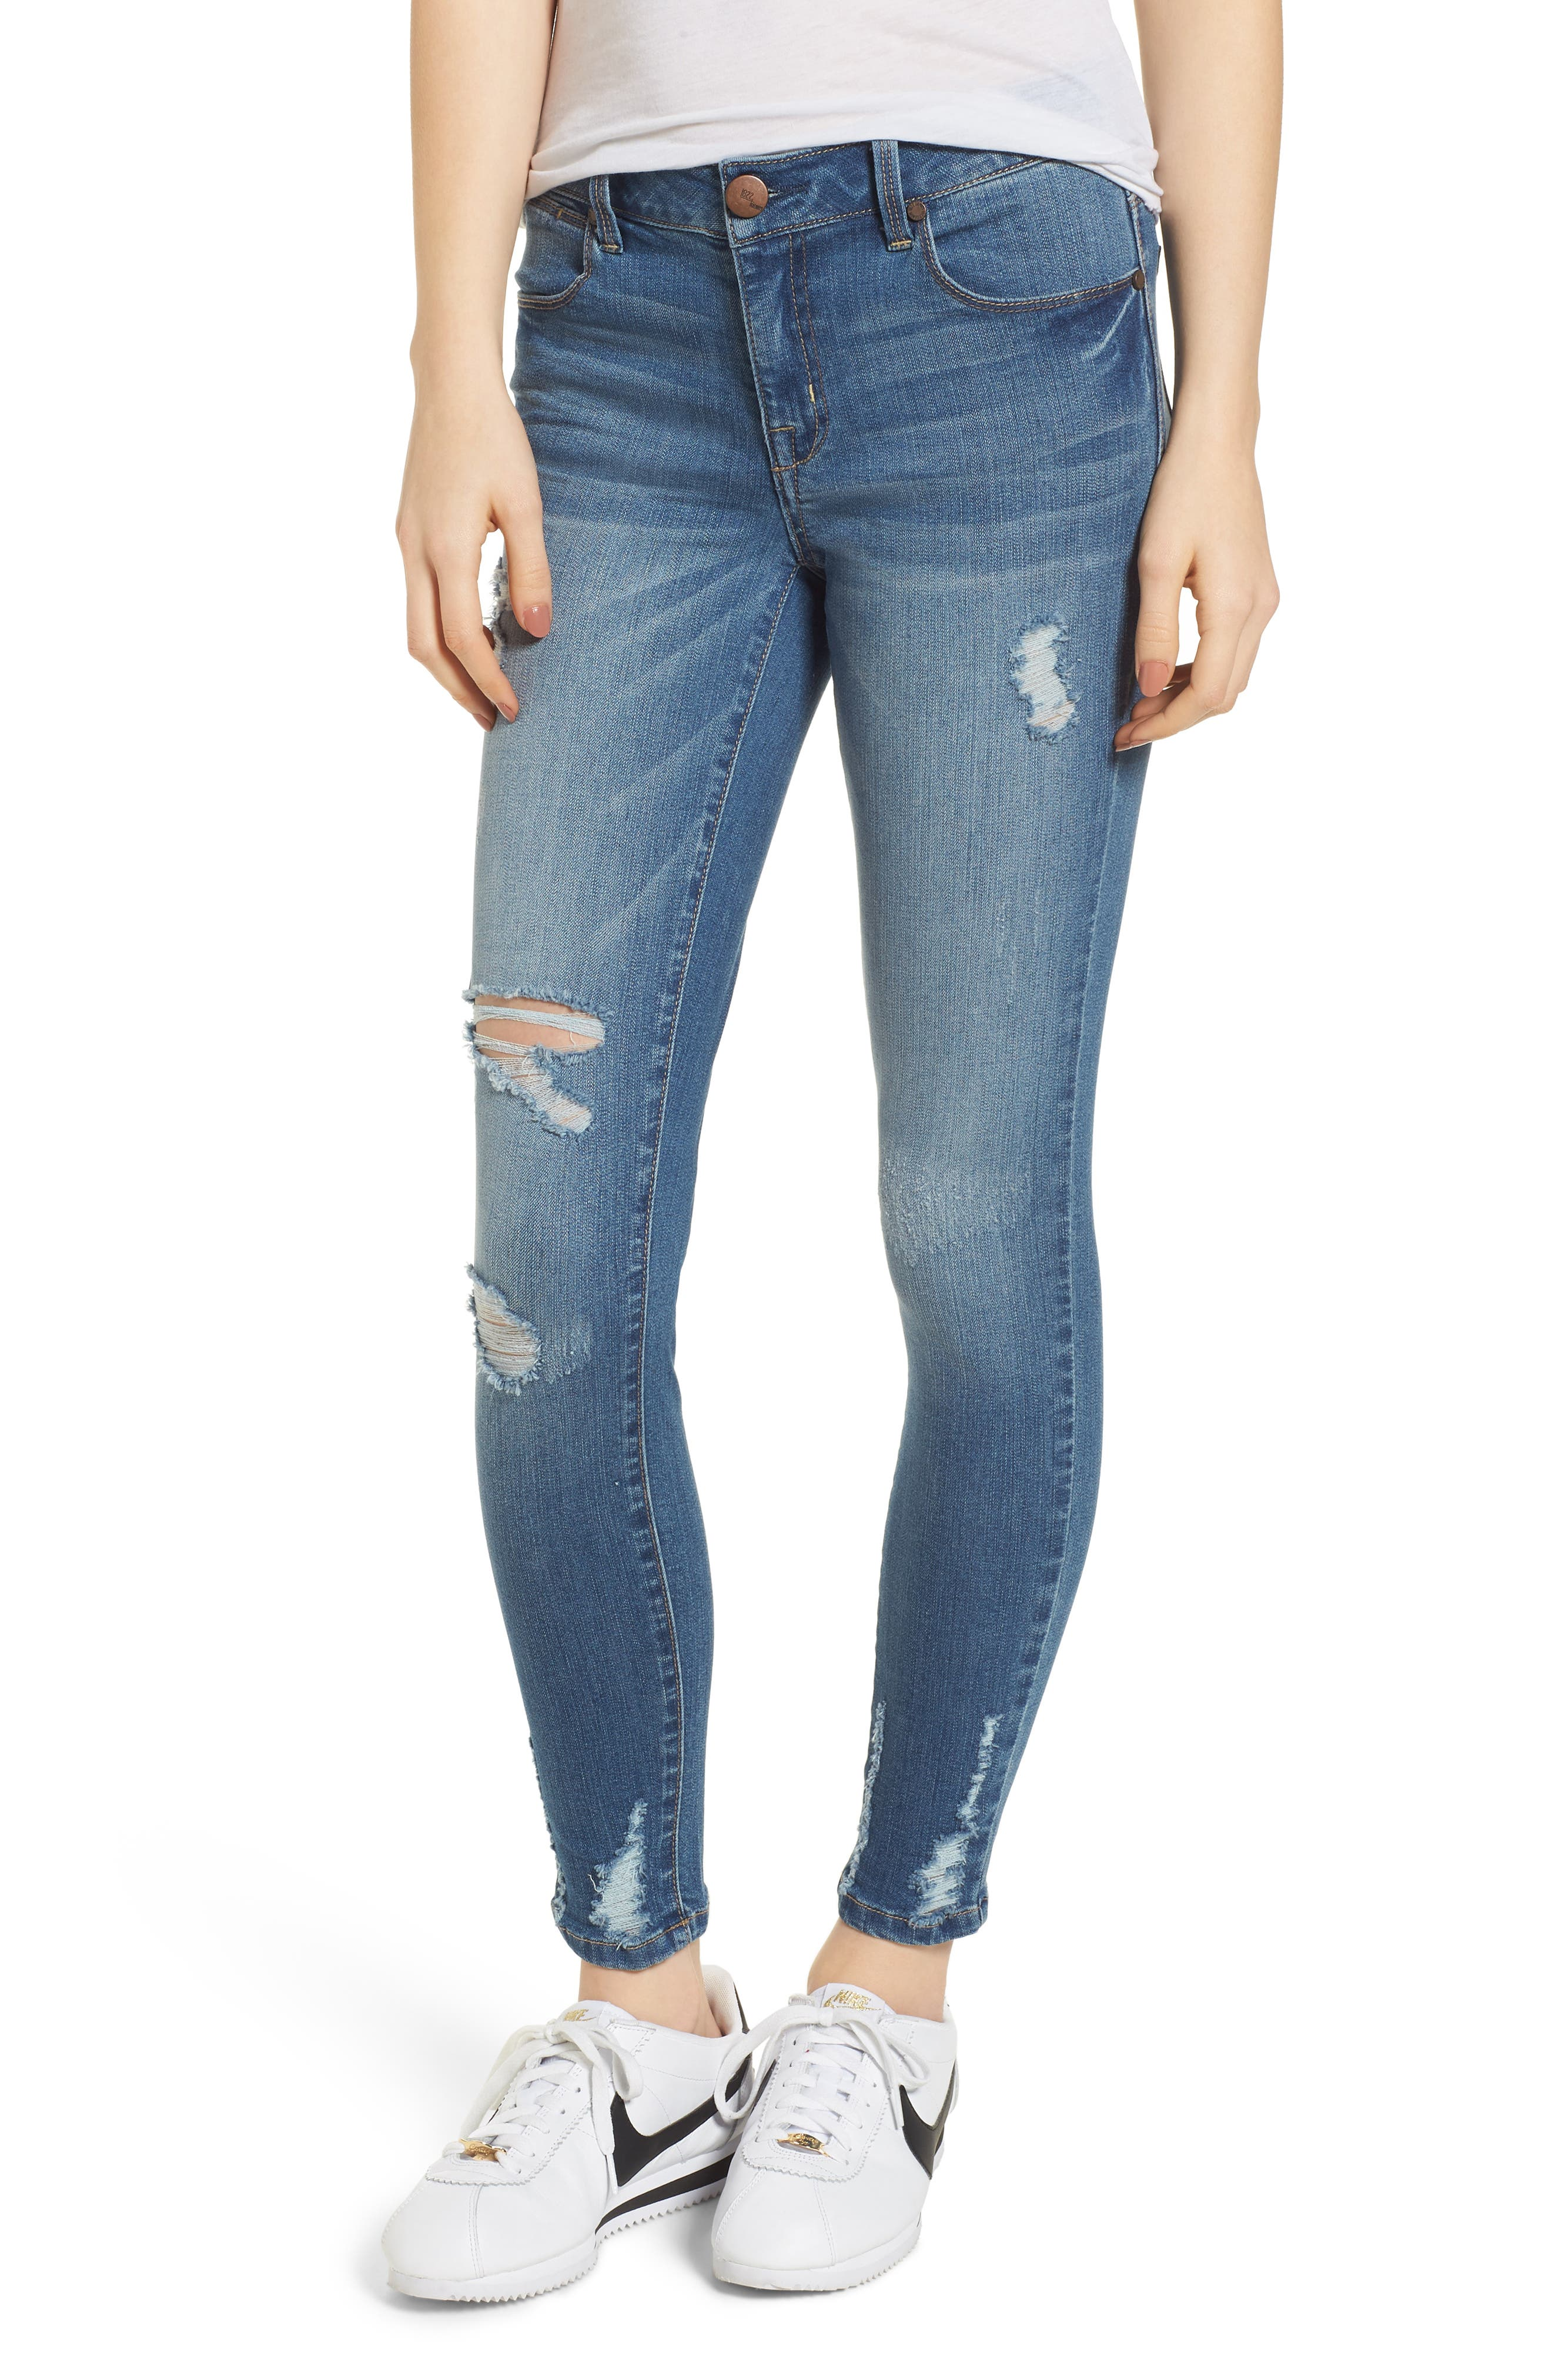 Main Image - 1822 Denim Ripped Skinny Ankle Jeans (Luca)